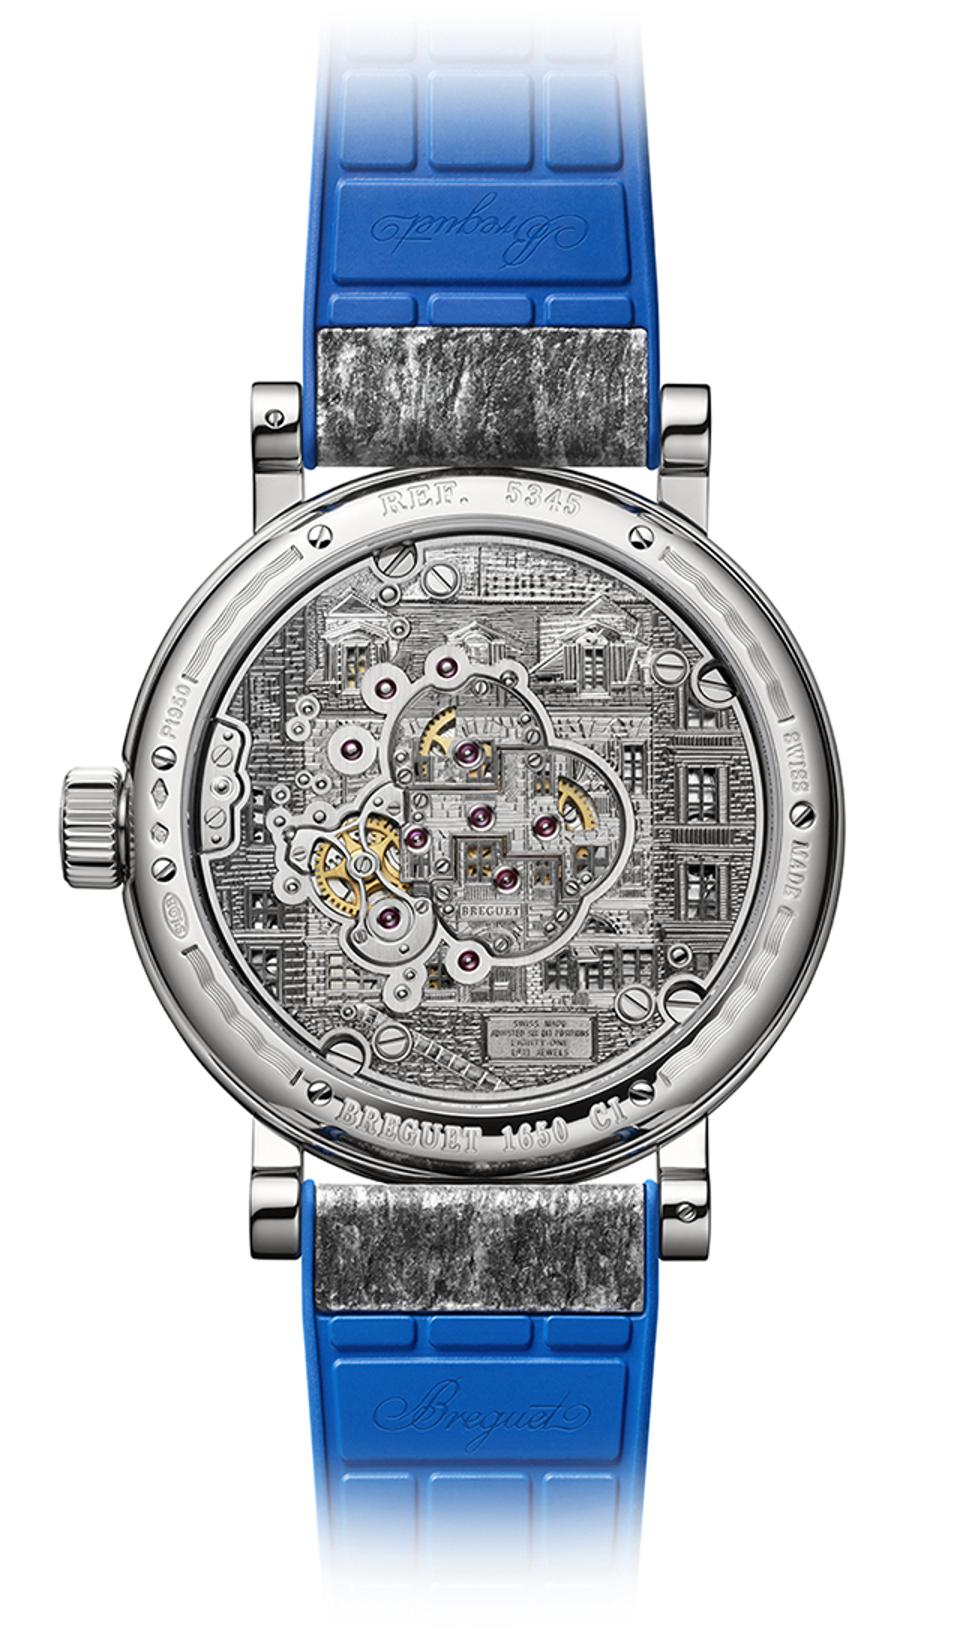 Engraved caseback of the Breguet Classique Double Tourbilon 5345 Quai De l'Horloge.